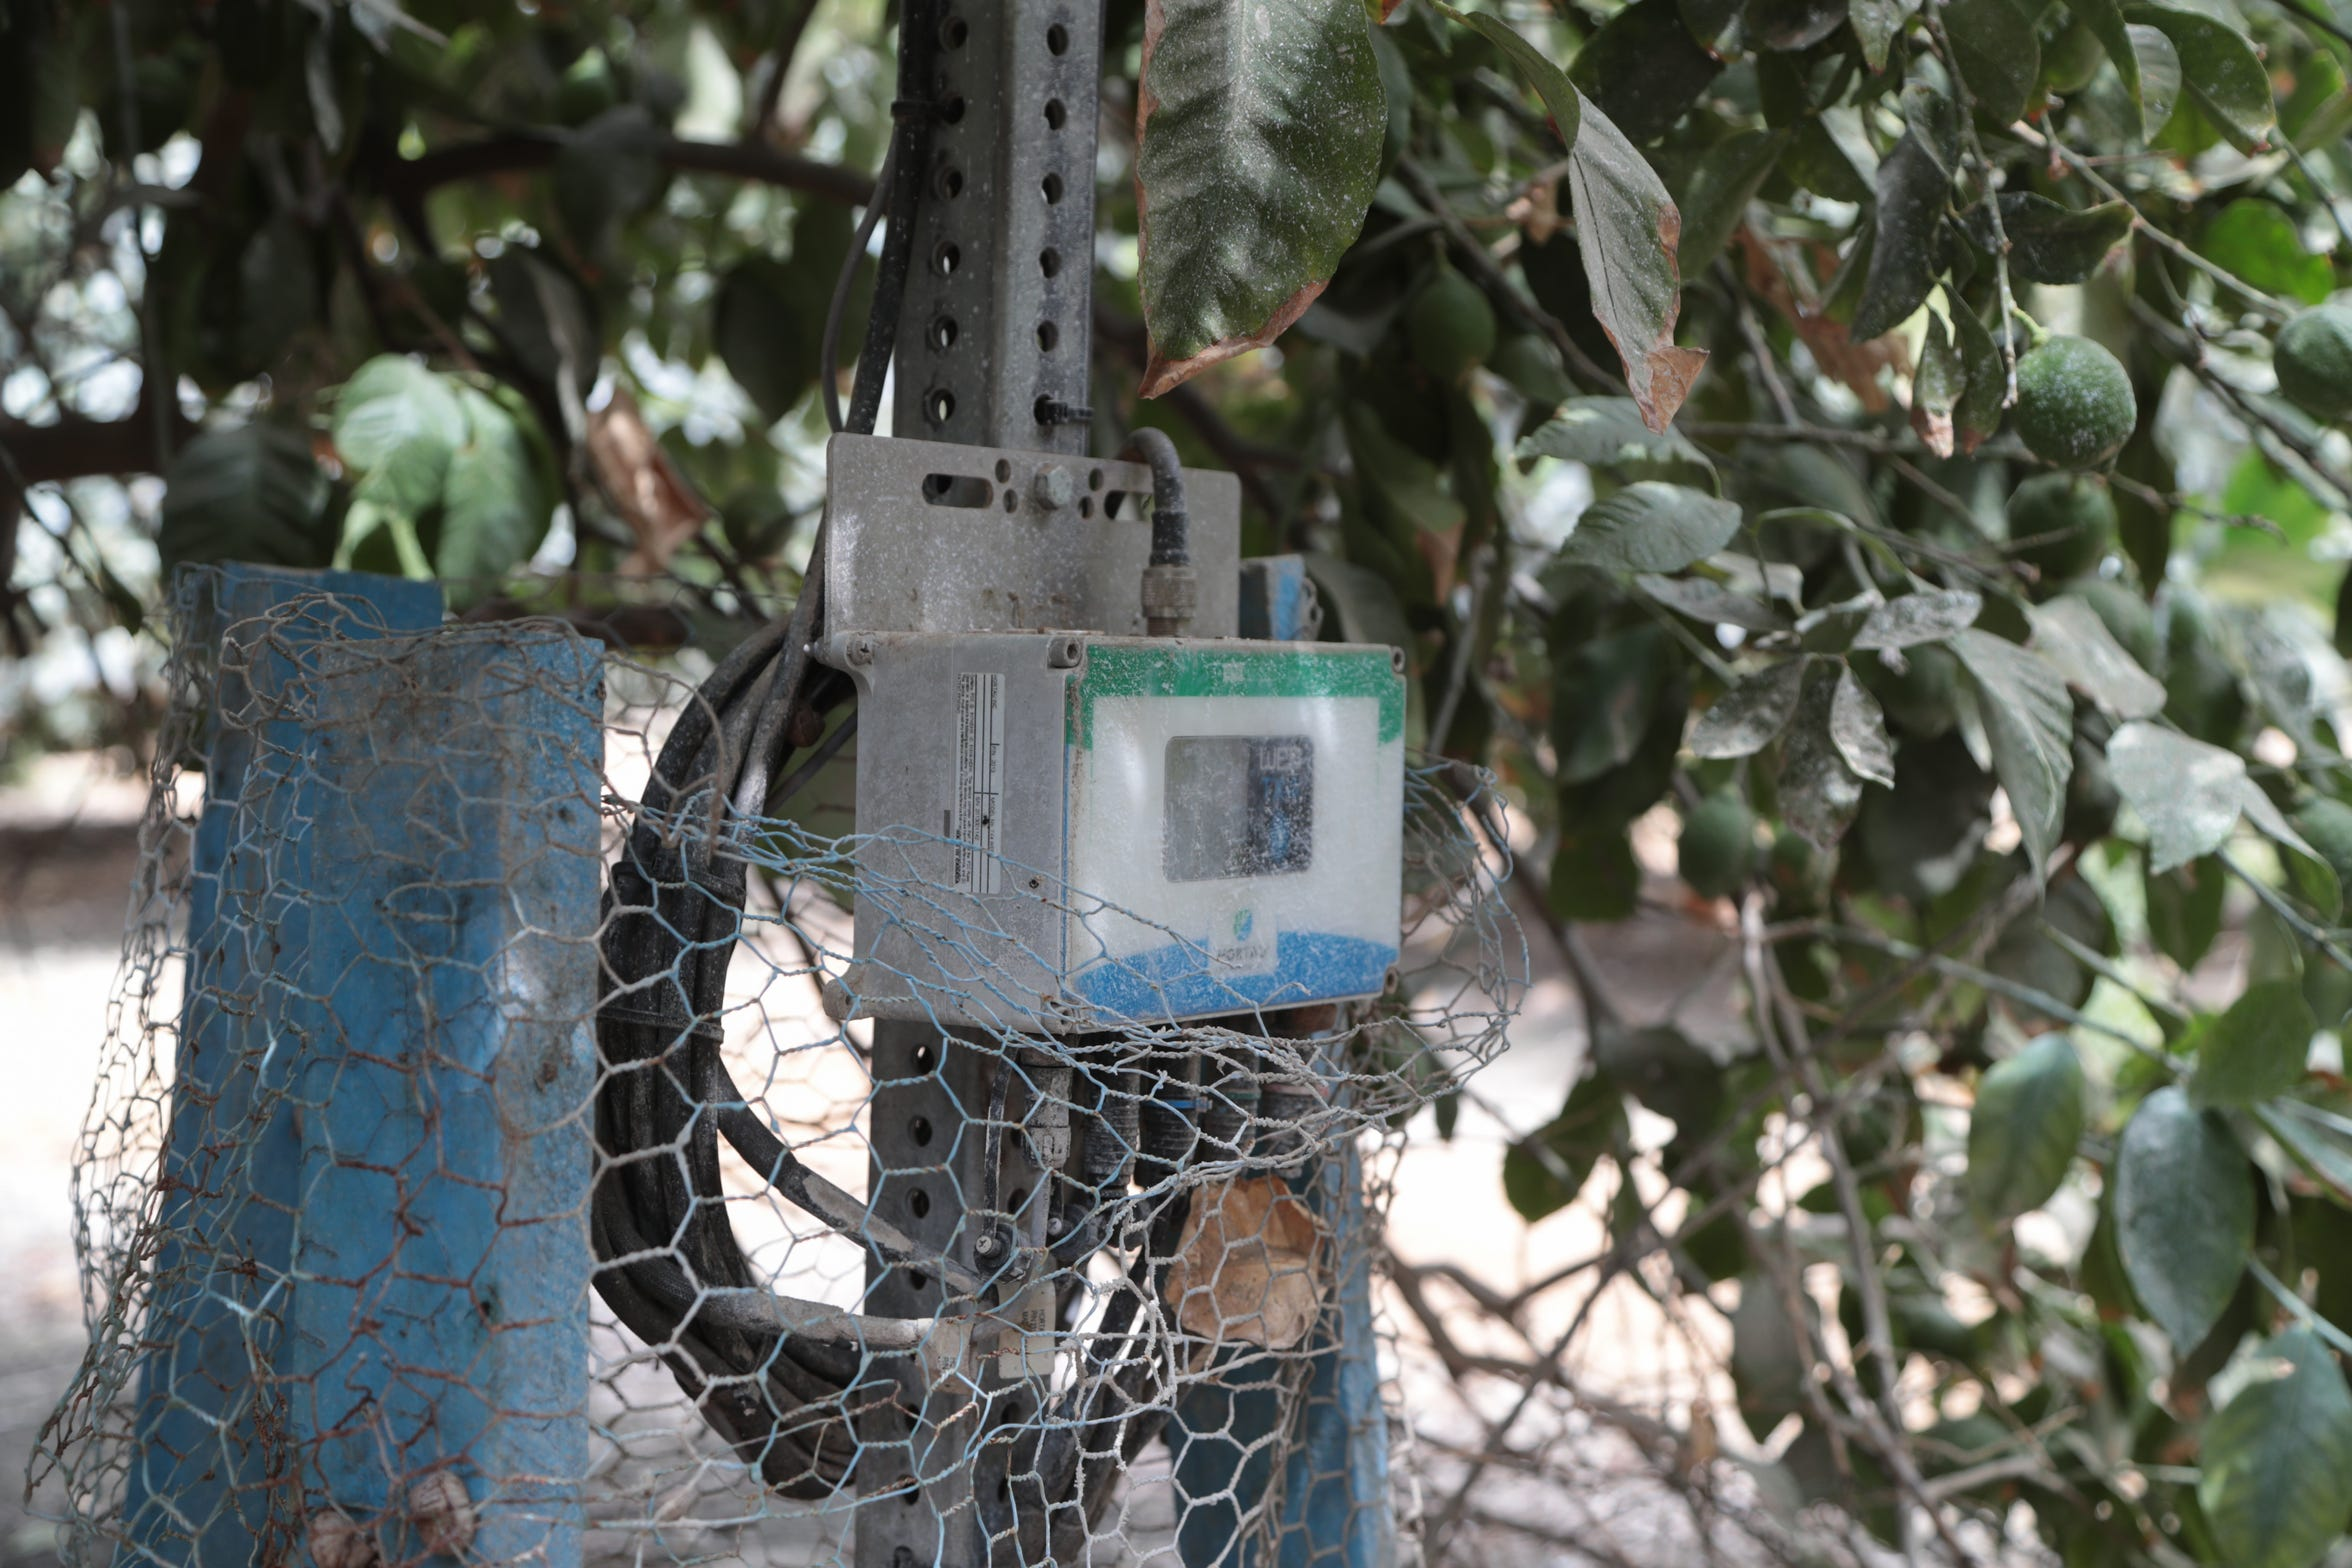 Workers at Seley Ranches use systems that monitor heat, wind and soil moisture to calculate the amount of water the citrus trees need and avoid water waste.